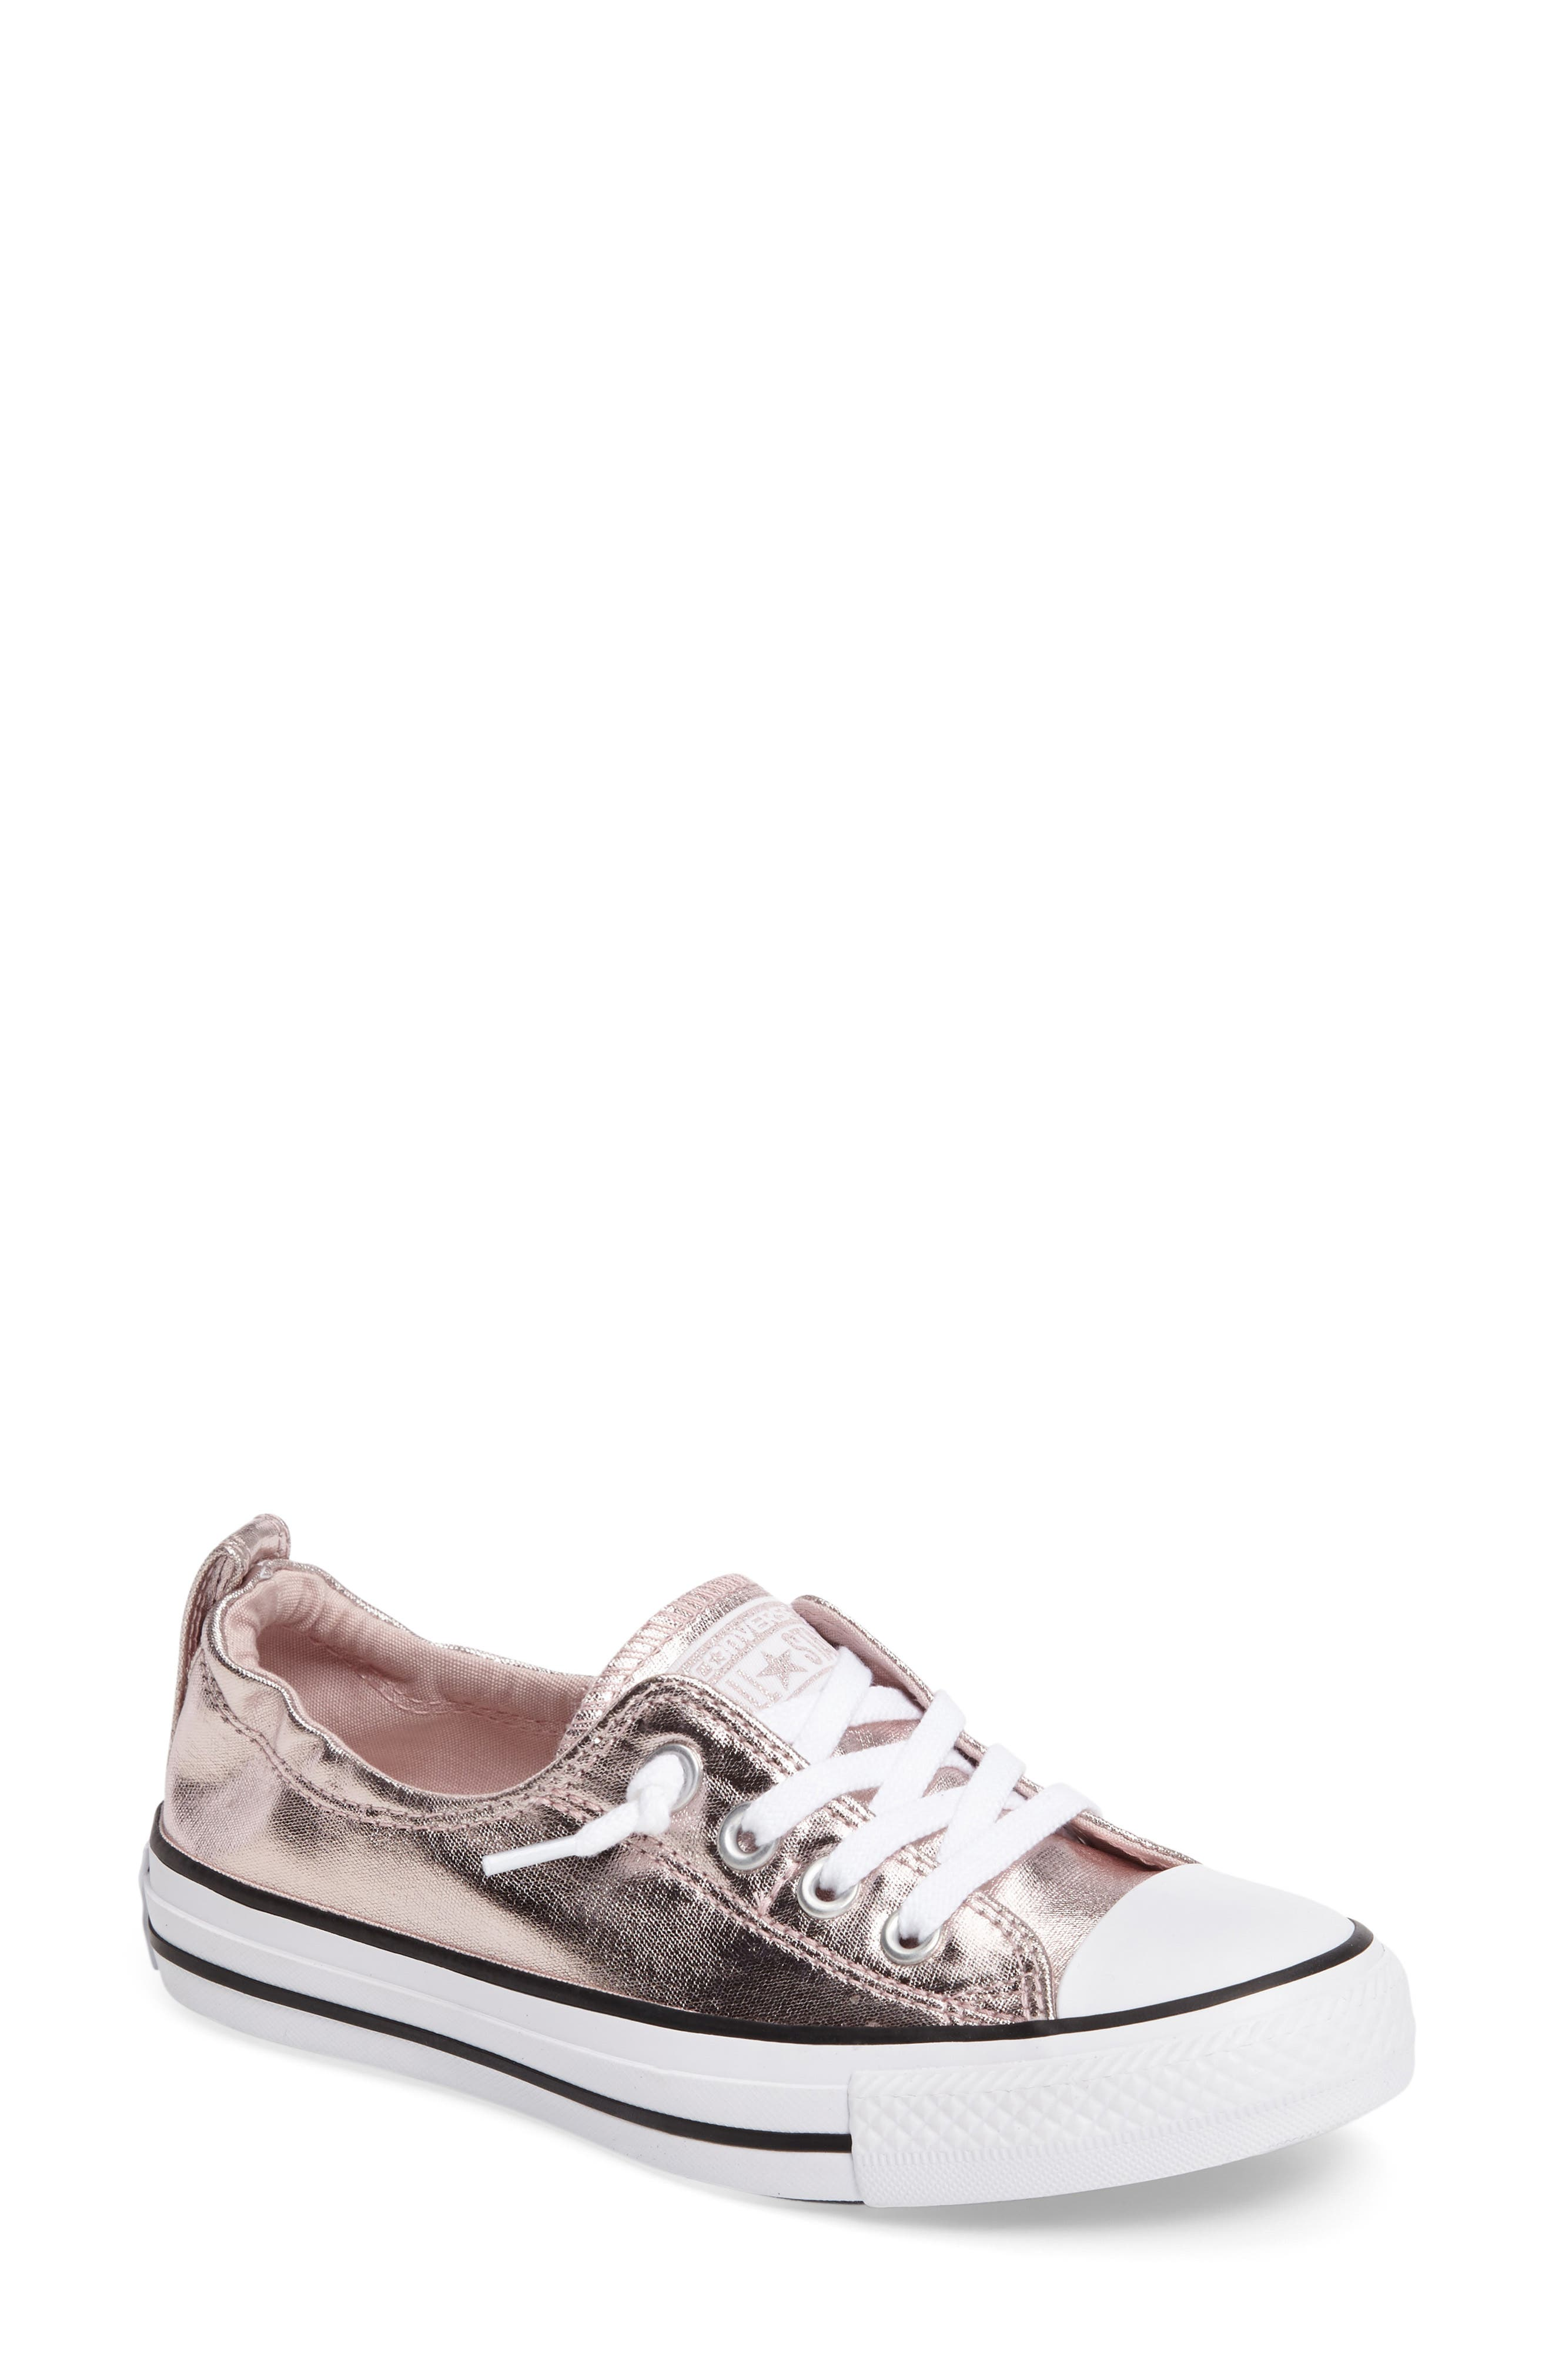 Alternate Image 1 Selected - Converse Chuck Taylor® All Star® Shoreline Low Top Sneaker (Women)